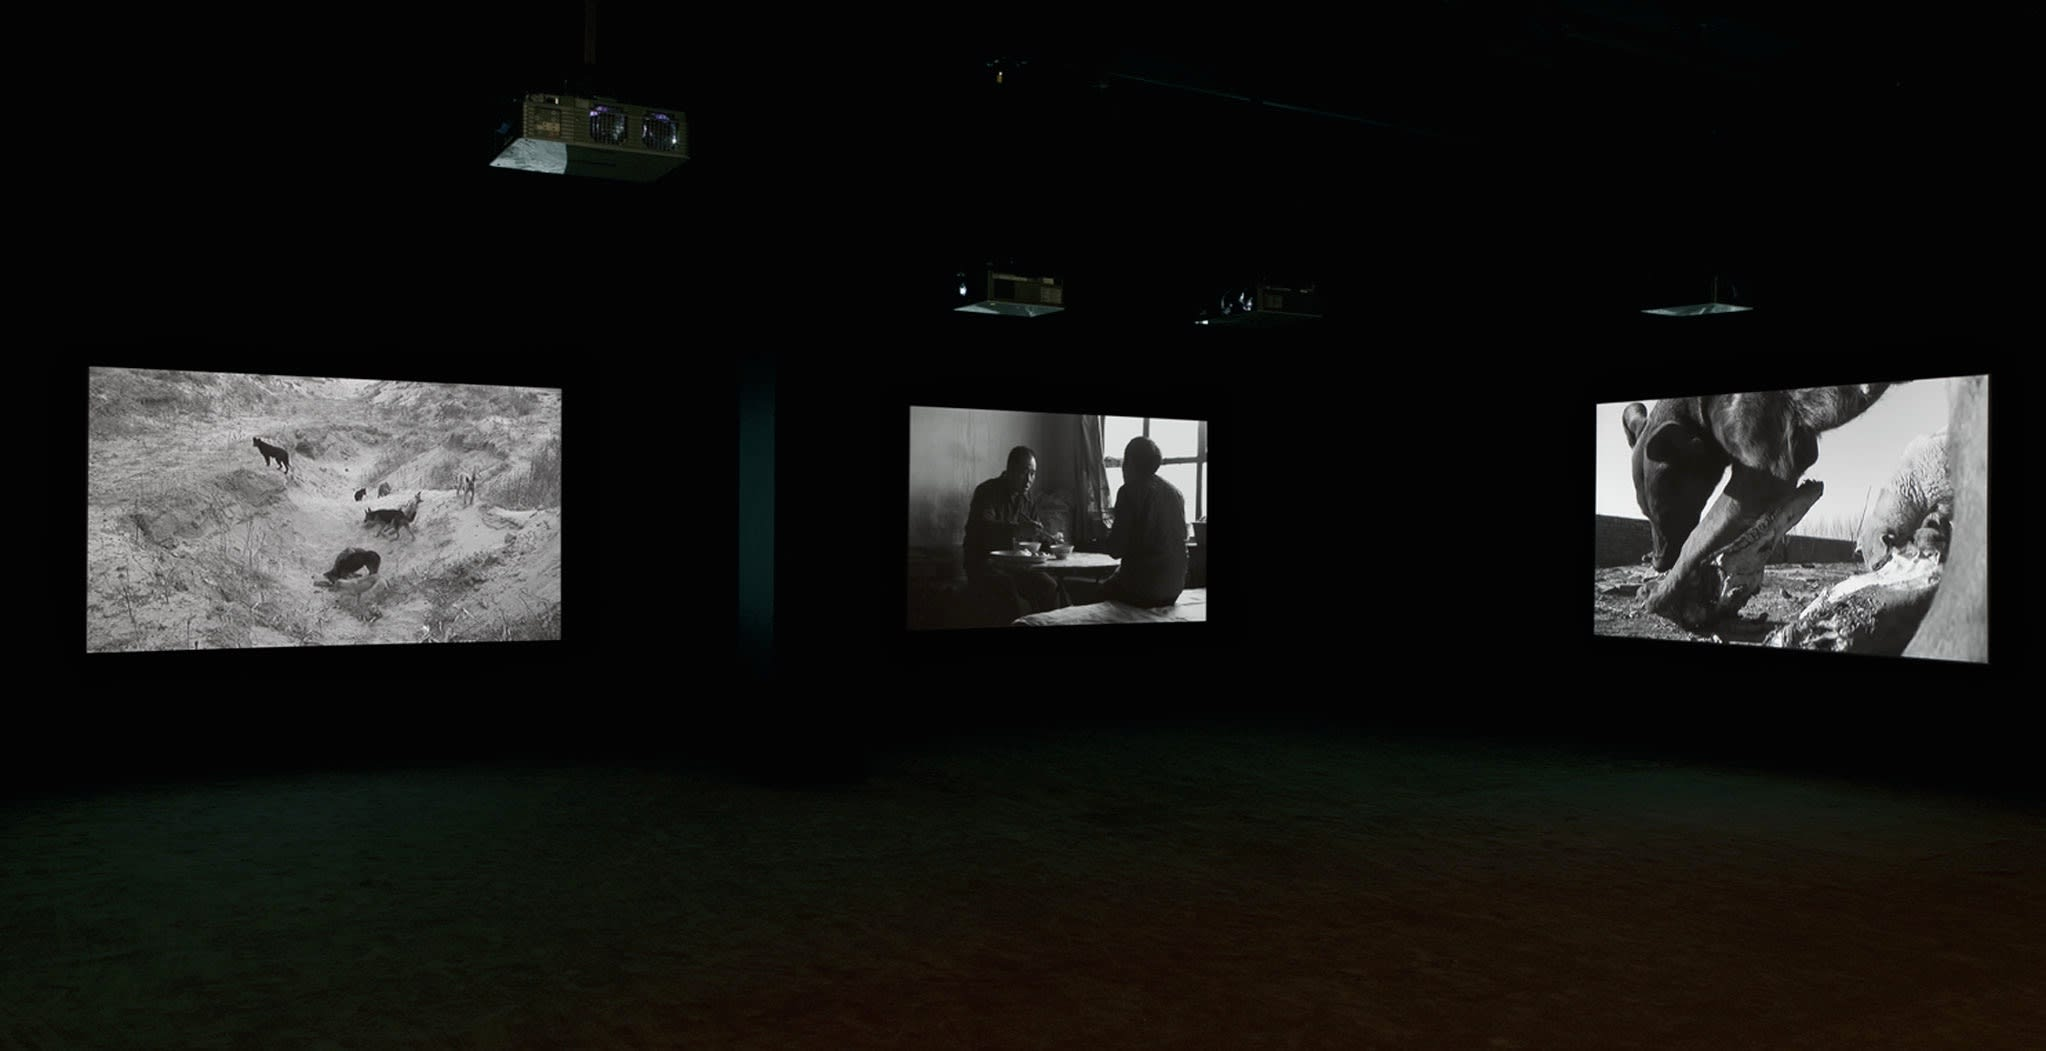 Three black-and-white images depicting men talking and dogs playing are projected around a dark room.